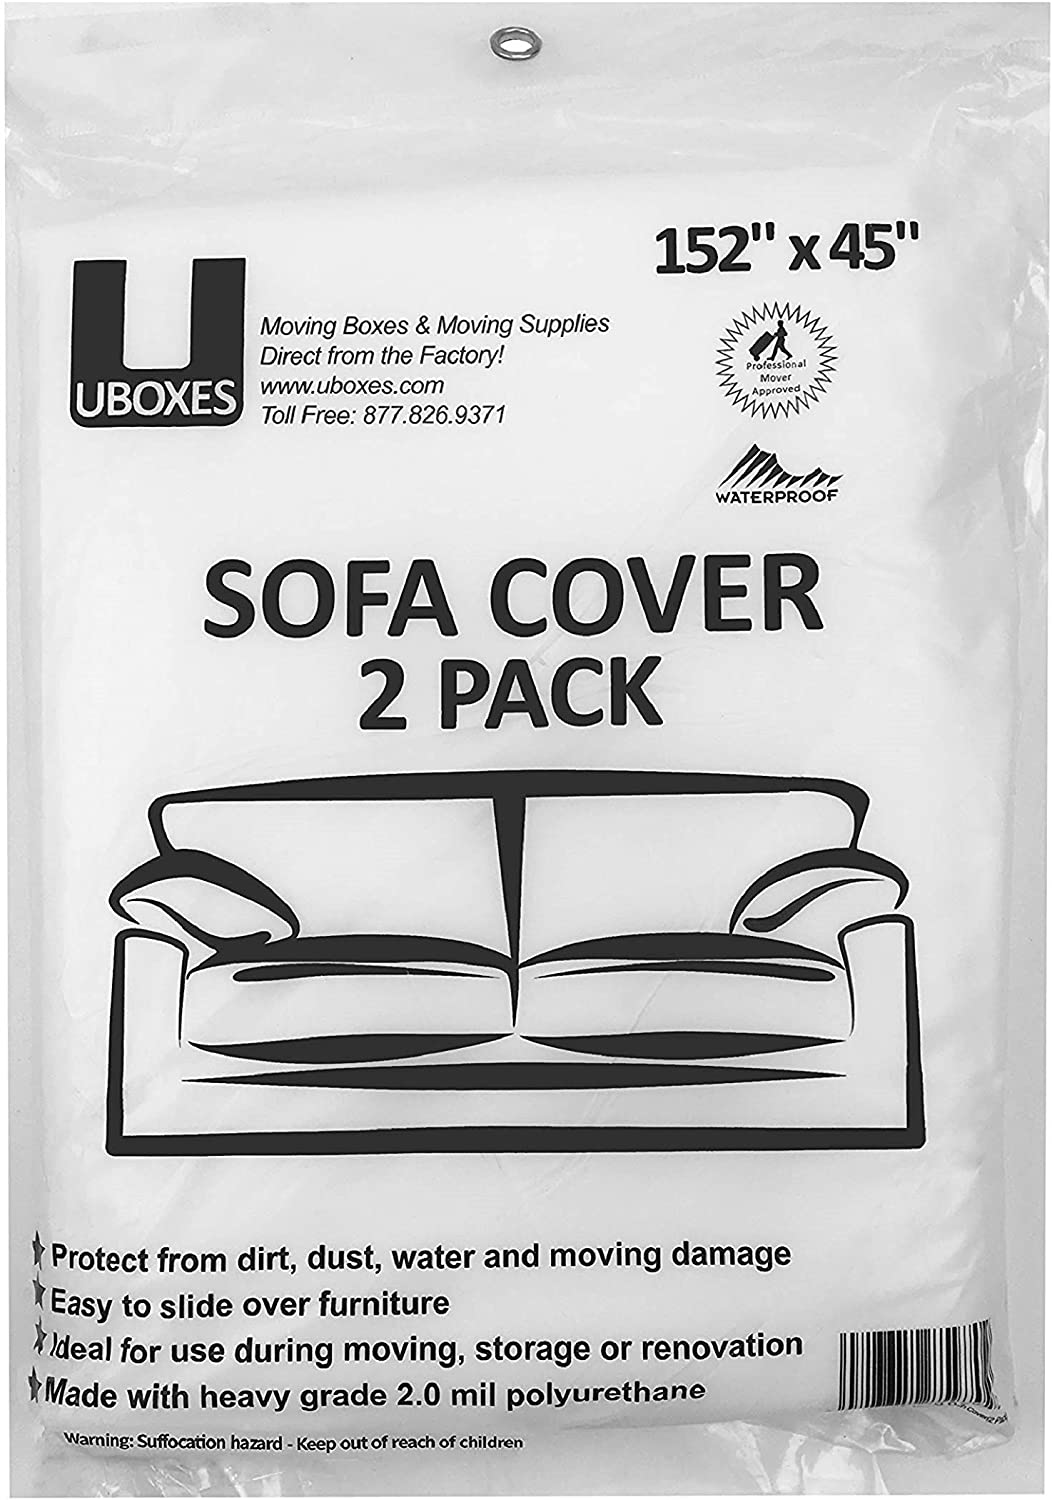 "SOFA Moving Covers (2 Pack) - 45"" x 152"" - Moving & Storage Bags - UBOXES"